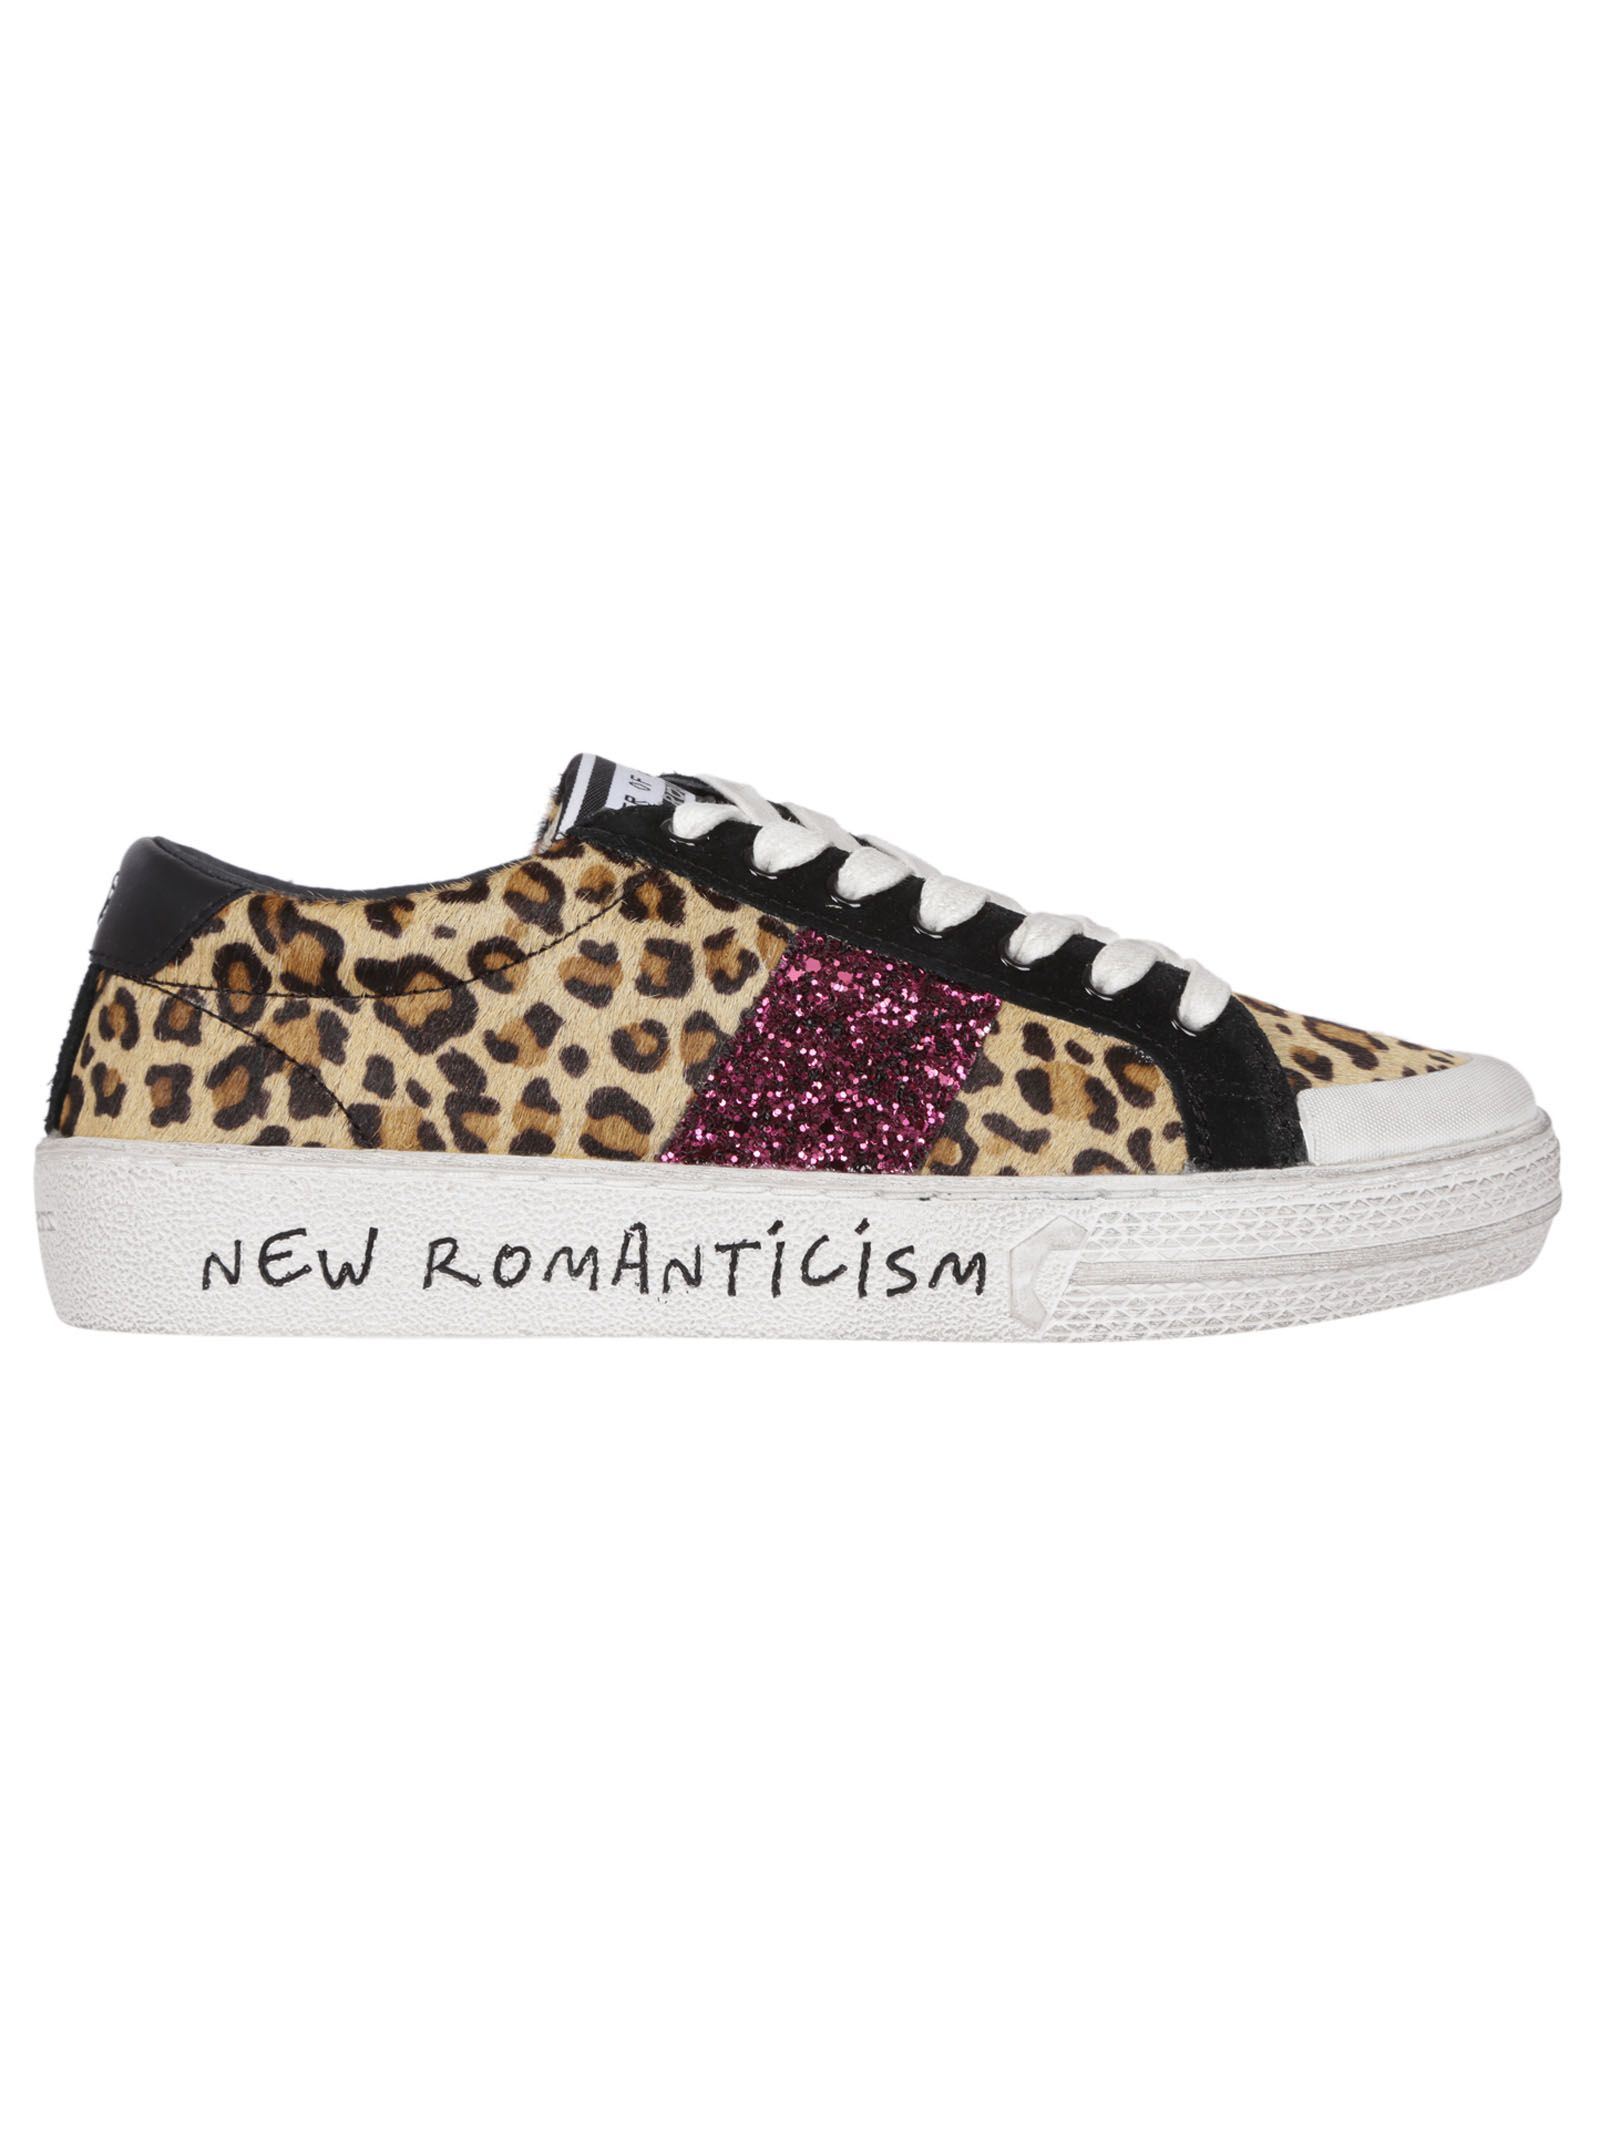 M.o.a. Master Of Arts Leopard Print Sneakers